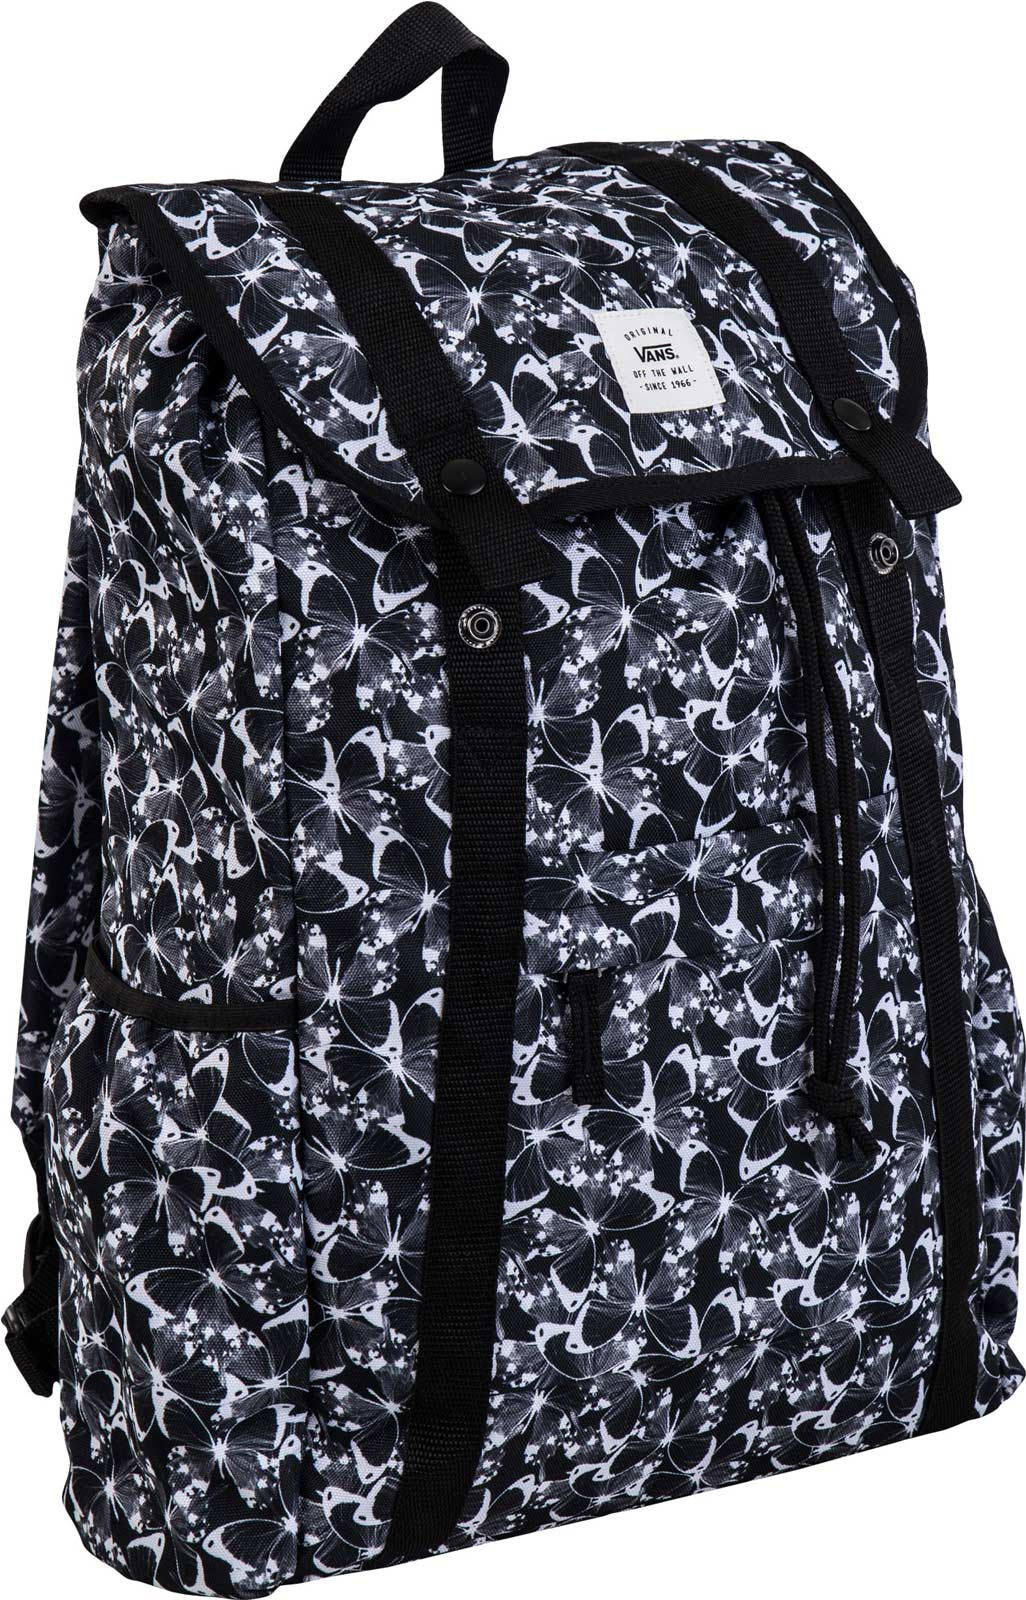 e640afabe4a05 Vans W CARAVANER BACKPACK BUTTERFLY